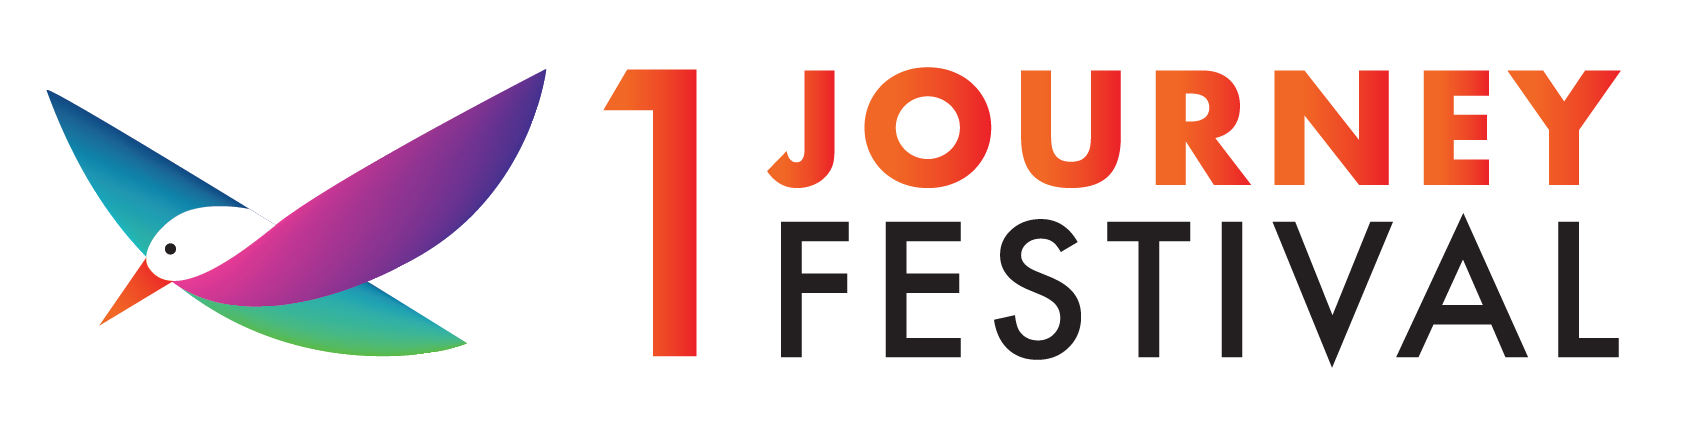 1 Journey Festival Logo hz.png